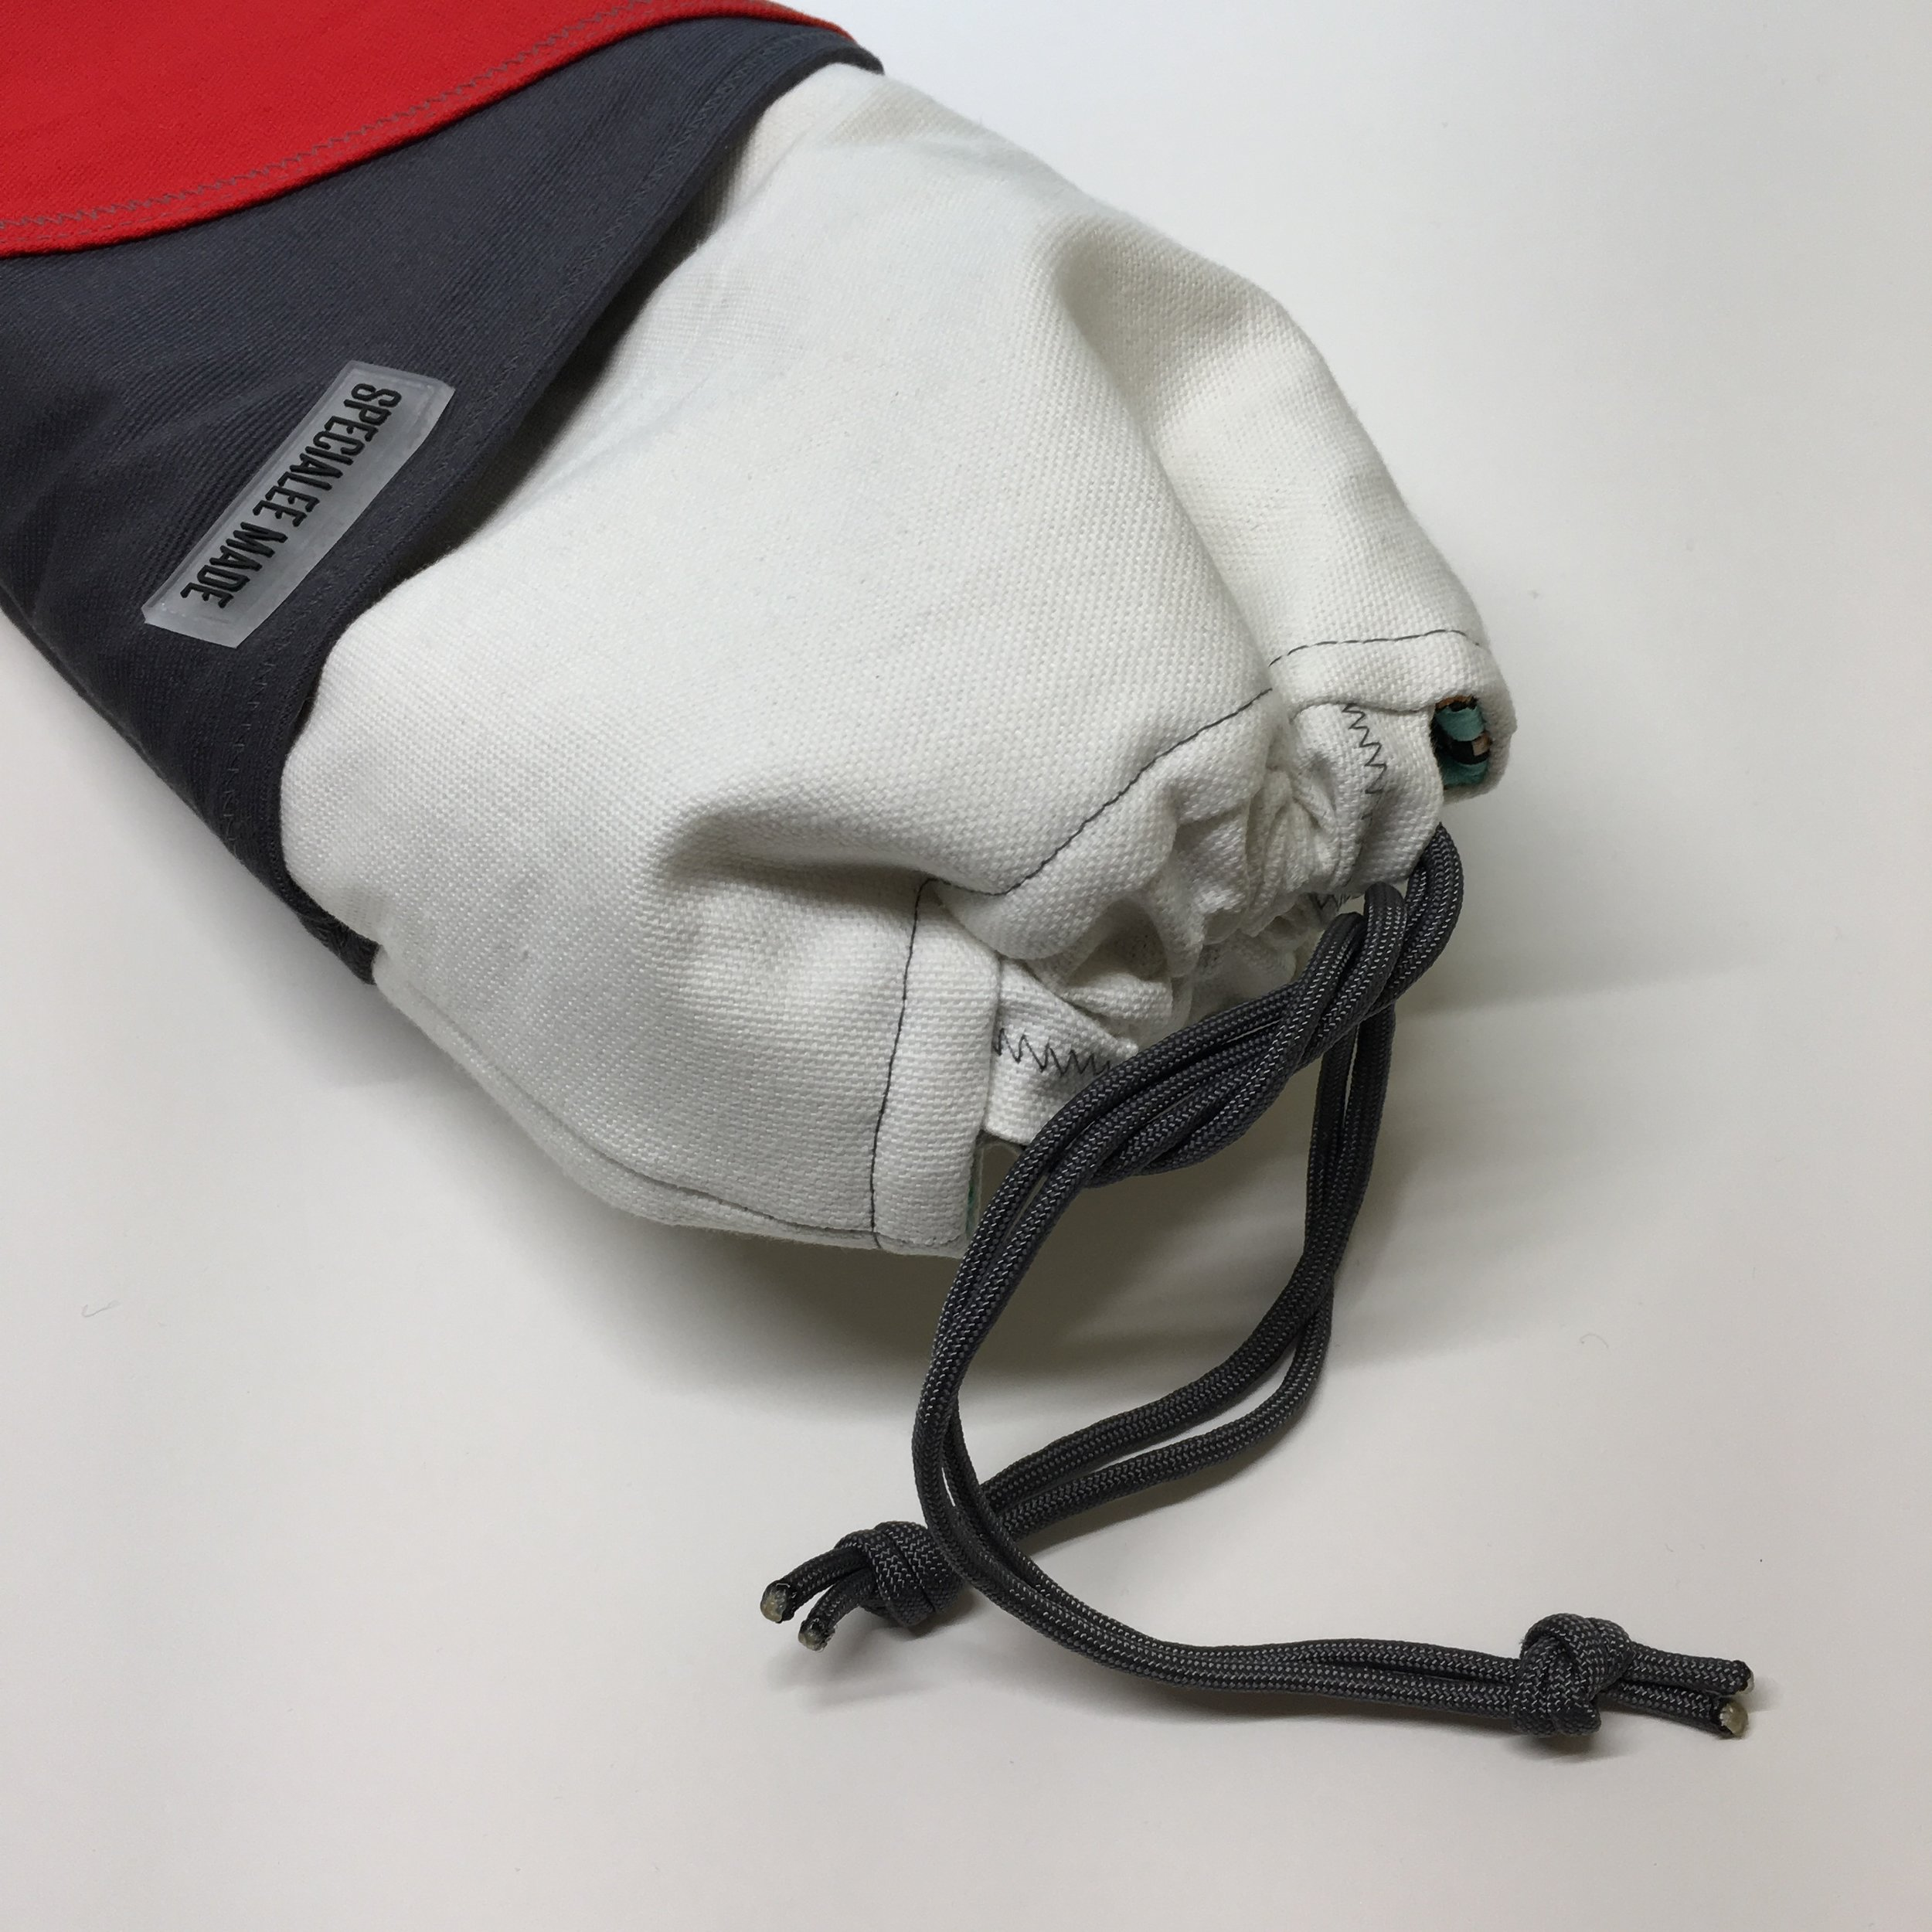 CLOSE STYLE: DRAWSTRING - The drawstringclose style gives users quick access to their keyboards. The strings can also be used as handles to carry the sleeve around. You may add a note in your order if you have a colour preference of the cord.